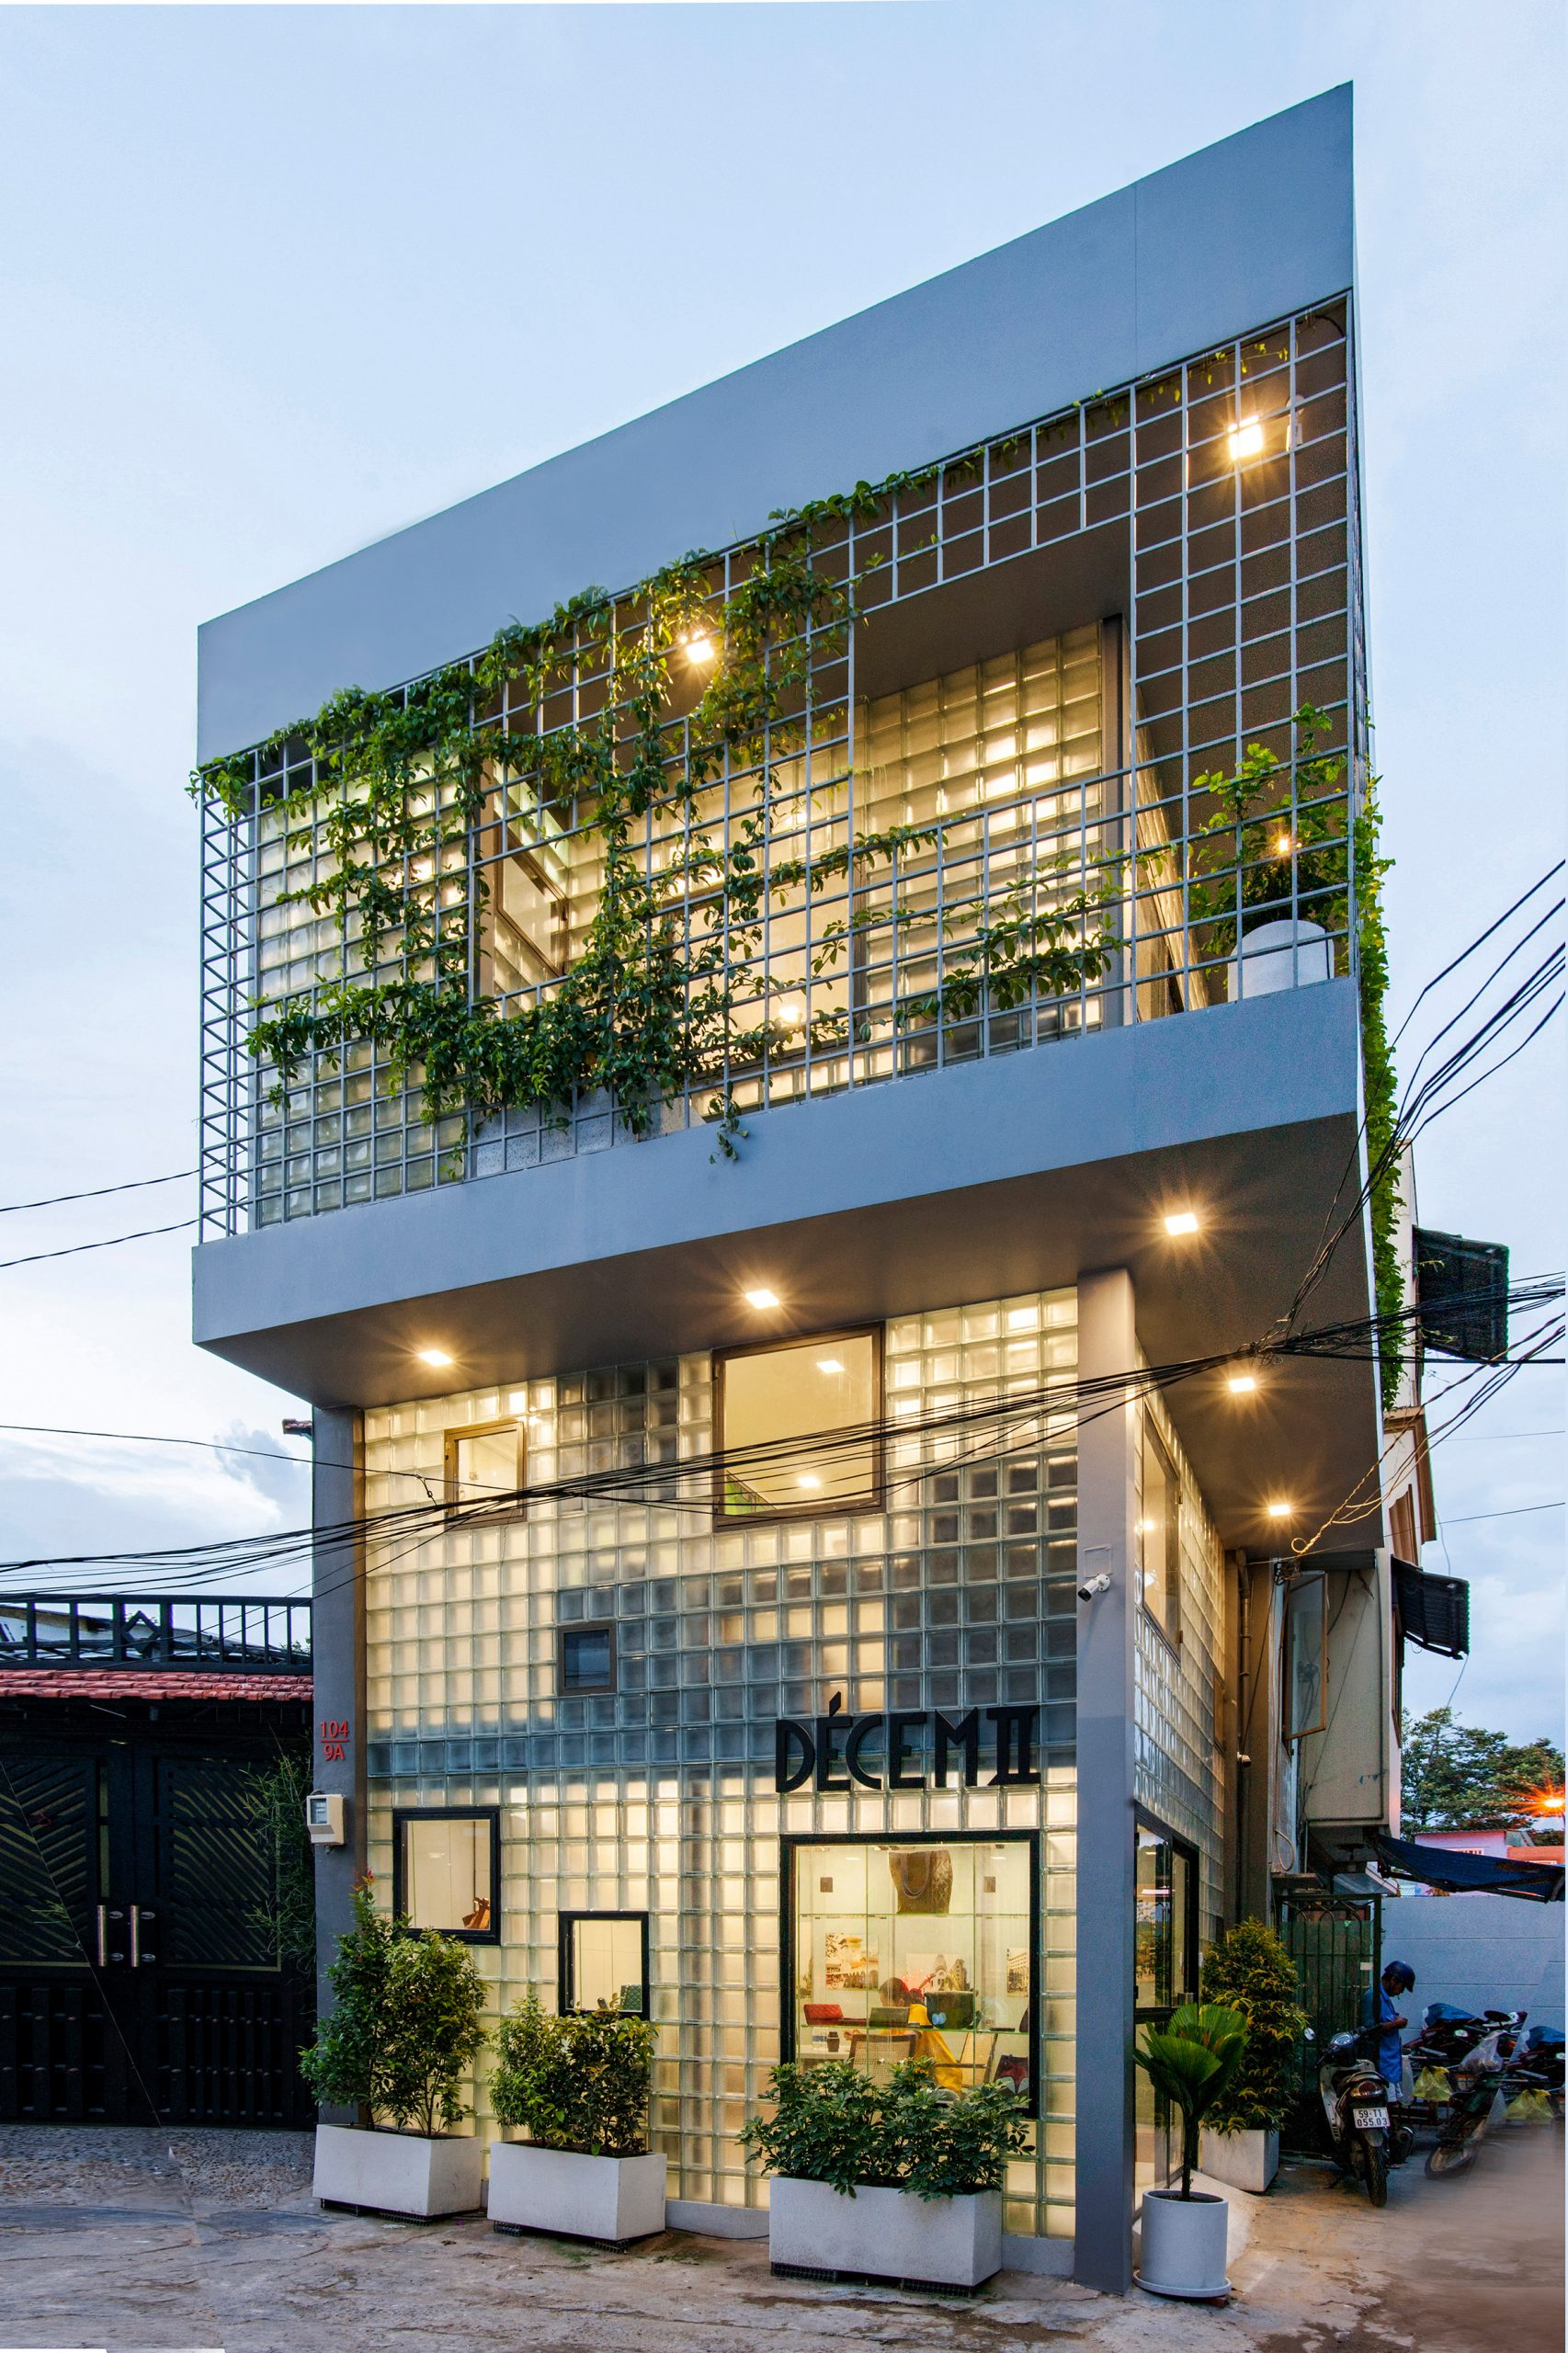 House with glass brick walls